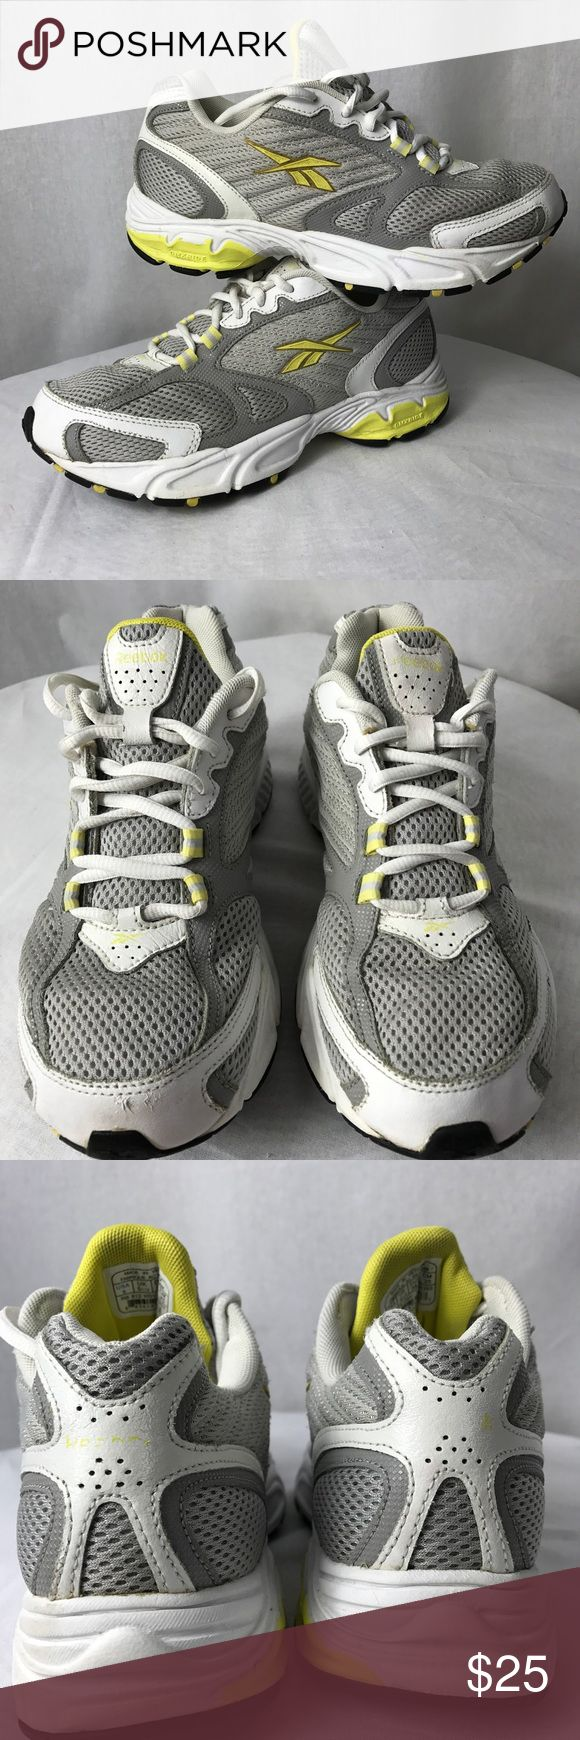 Reebok Athletic Shoes• Sz 8 New Year Resolutions?? Here are some nice workout Reeboks. Silver grey and a pop of yellow, weather you are a walker, Zumba or weight training these are a nice looking shoe. Reebok Shoes Athletic Shoes